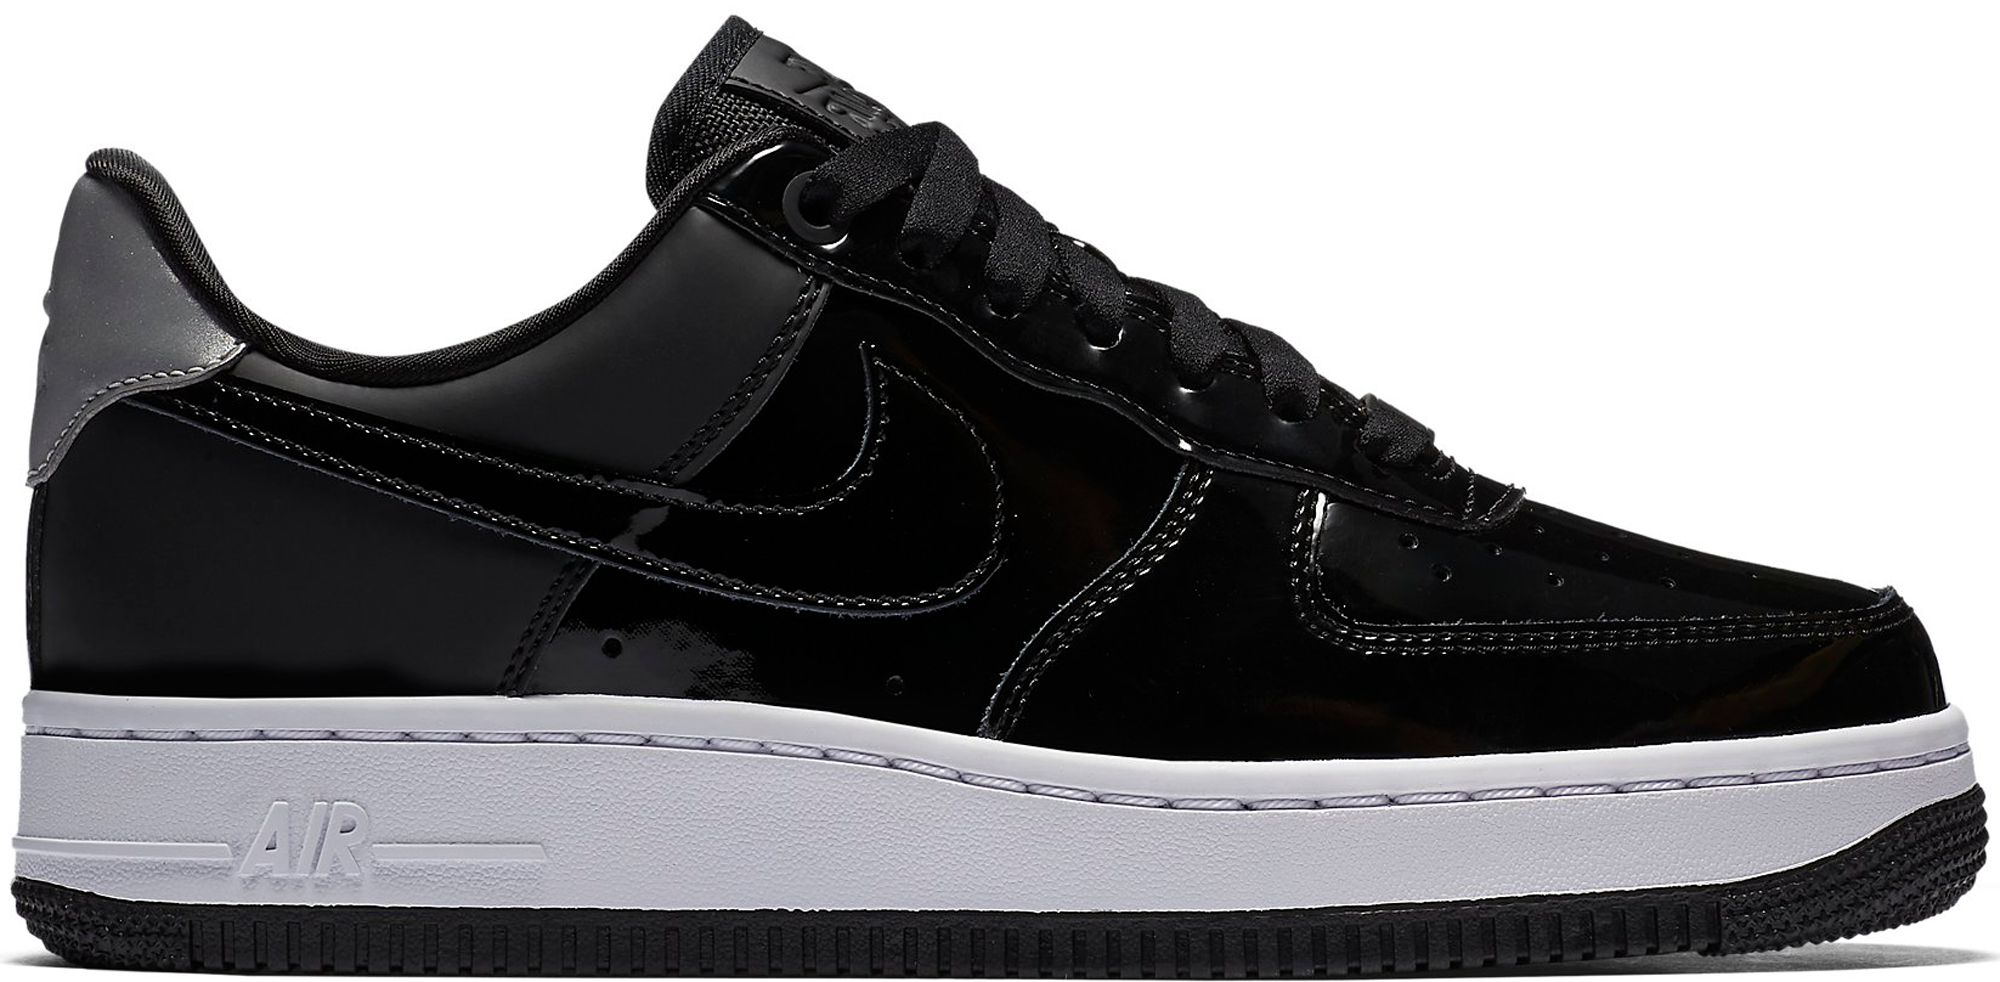 BRADSTYLE NIKE AIR FORCE 1 LOW BLACK PATENT LEATHER REVIEW + ON FEET